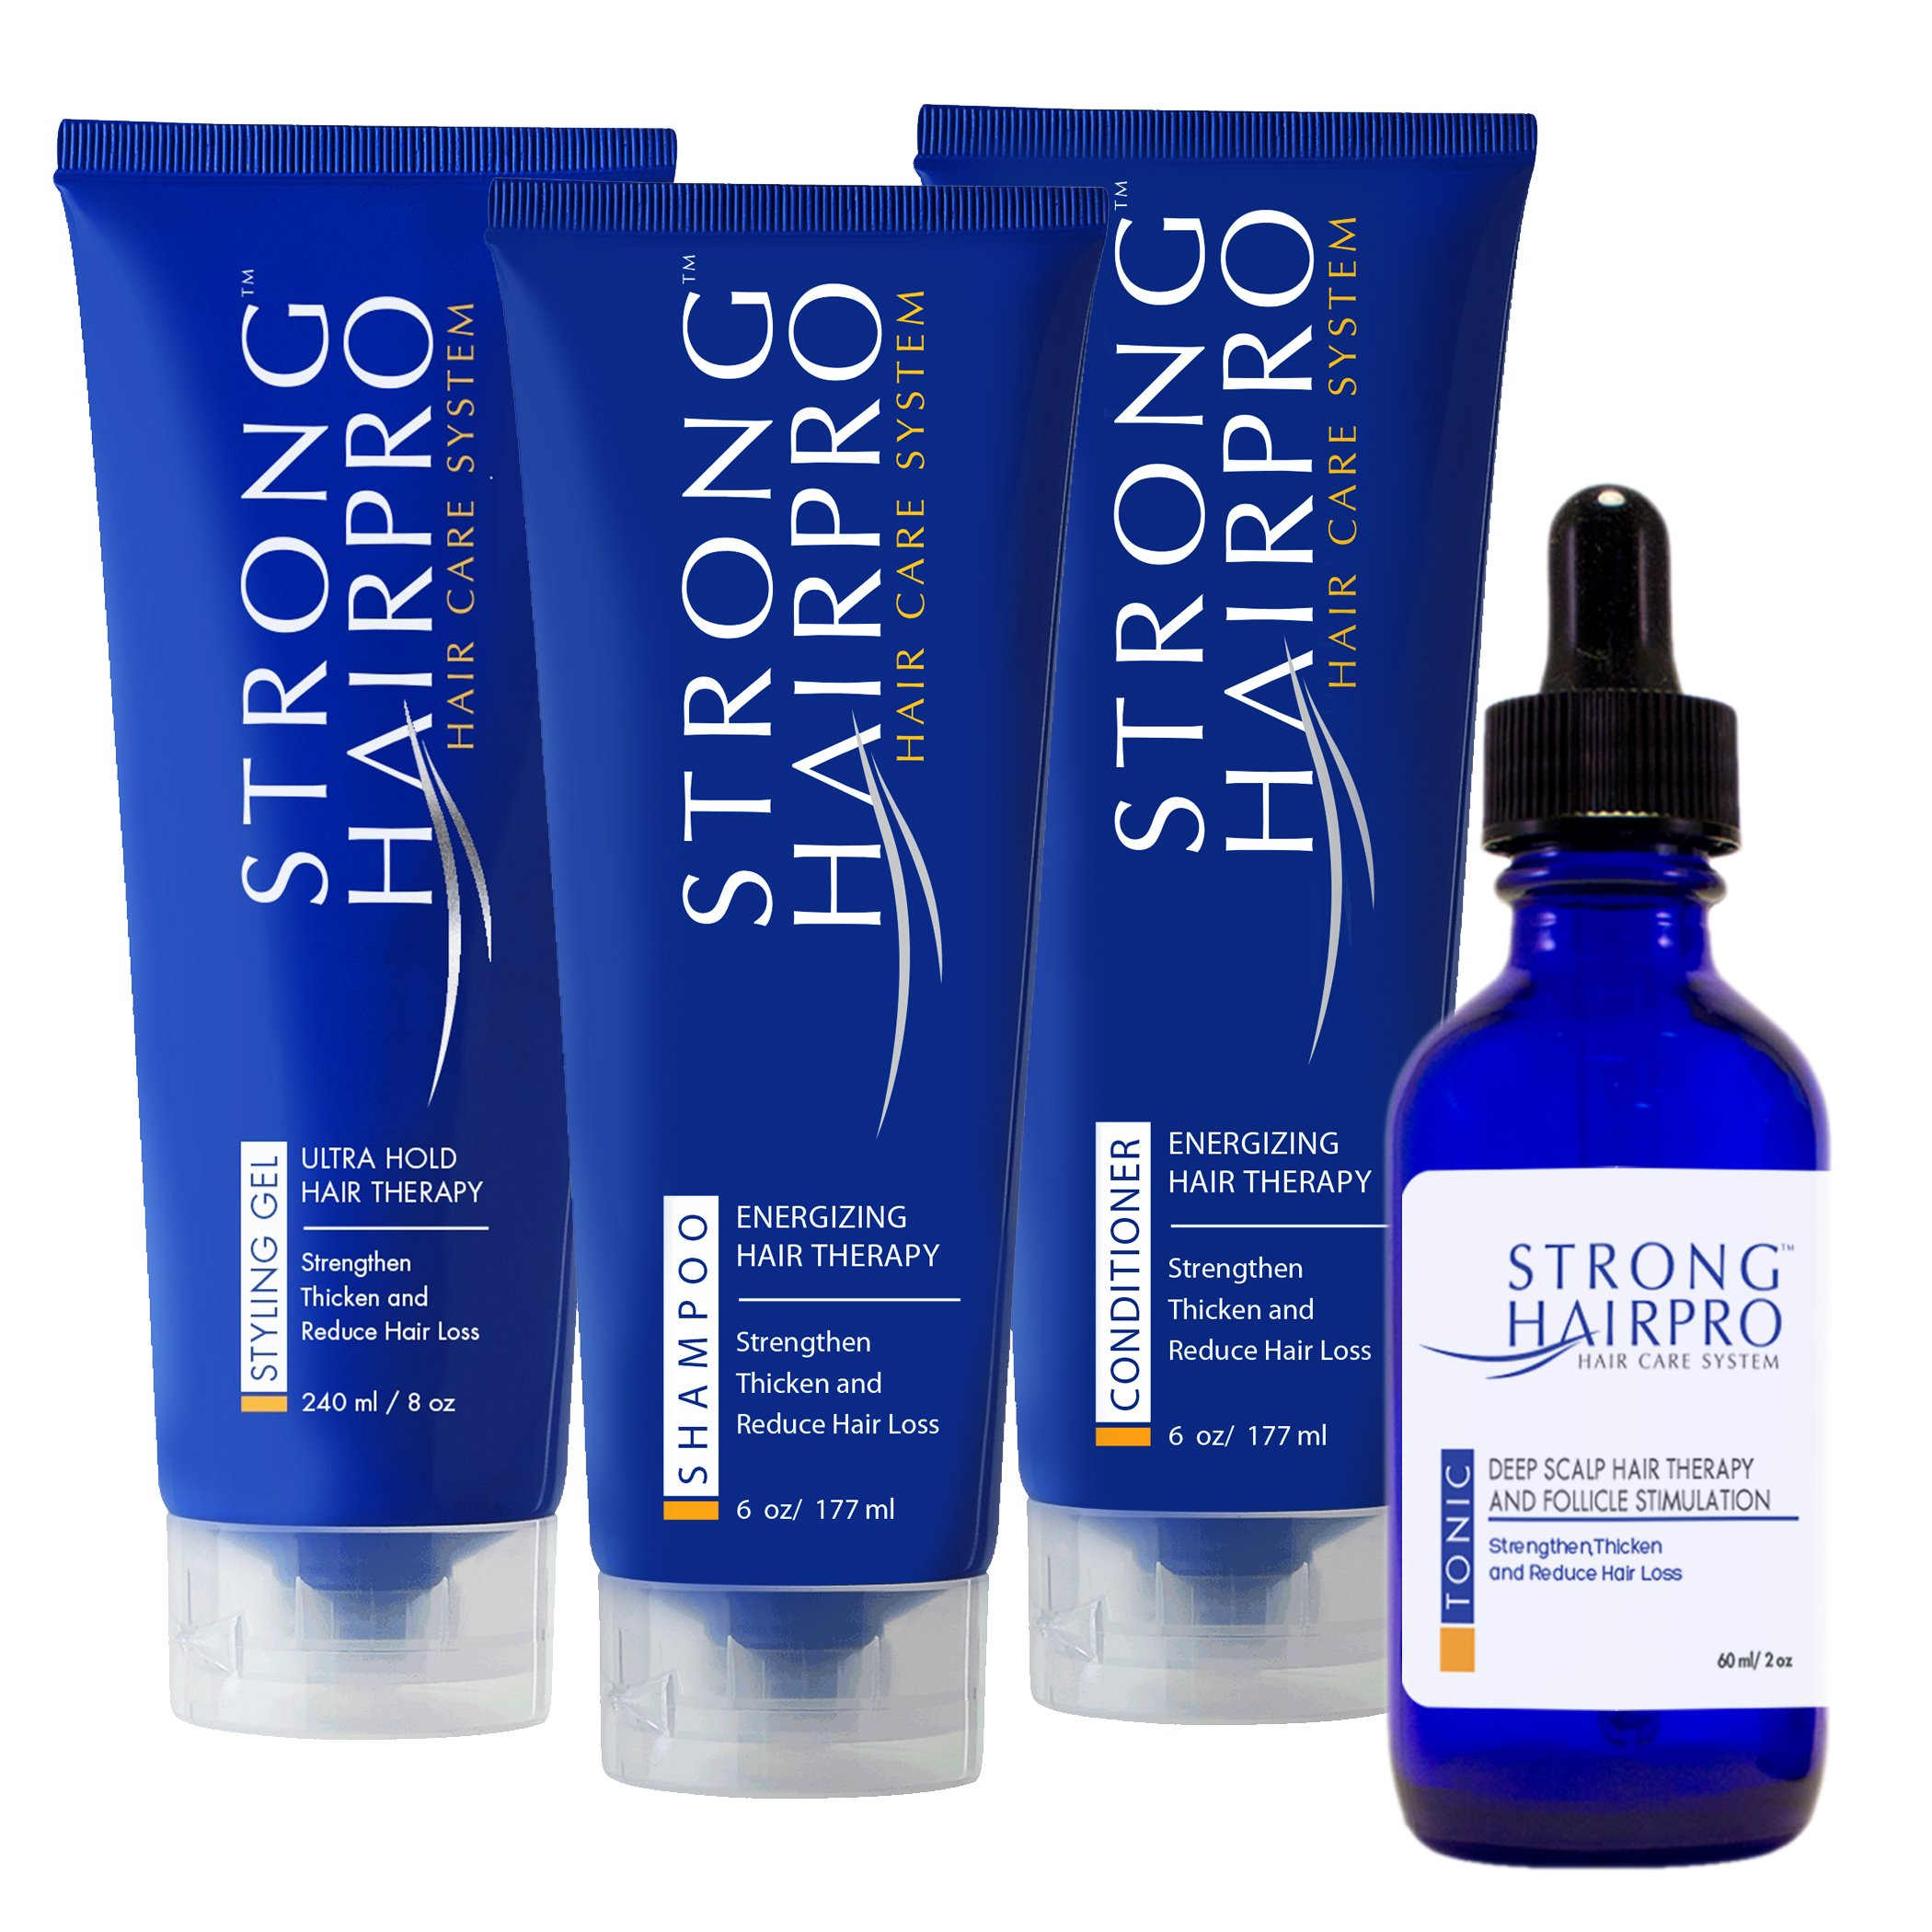 Strong HairPro Hair Care System - Deep Scalp Hair Therapy & Follicle Stimulation (Full Set) by STRONG HAIRPRO HAIR CARE SYSTEM (Image #2)